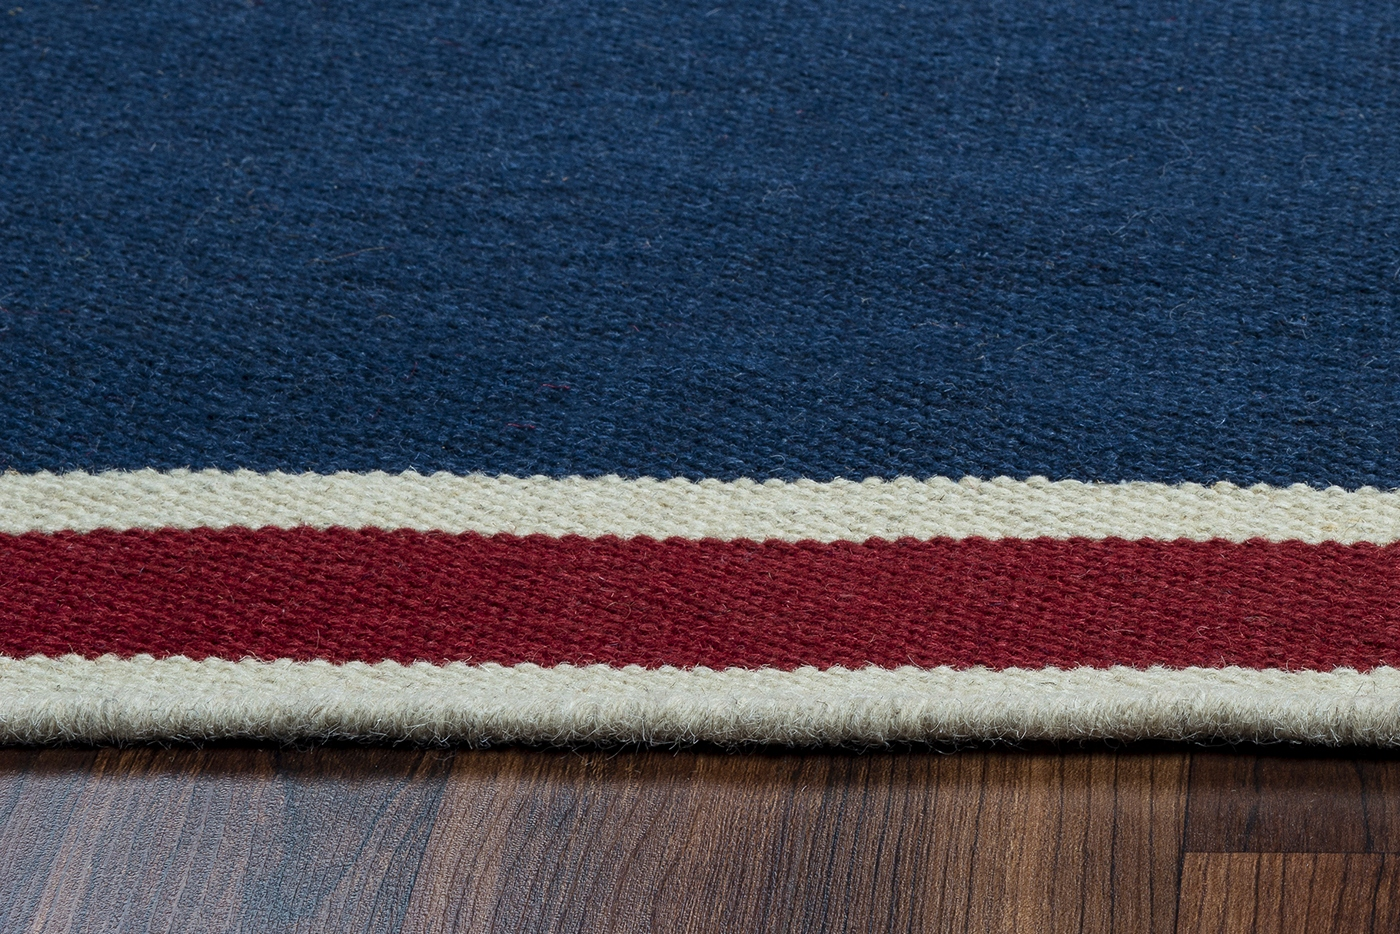 Swing Basic Stripes Wool Area Rug In Navy Burgundy Off